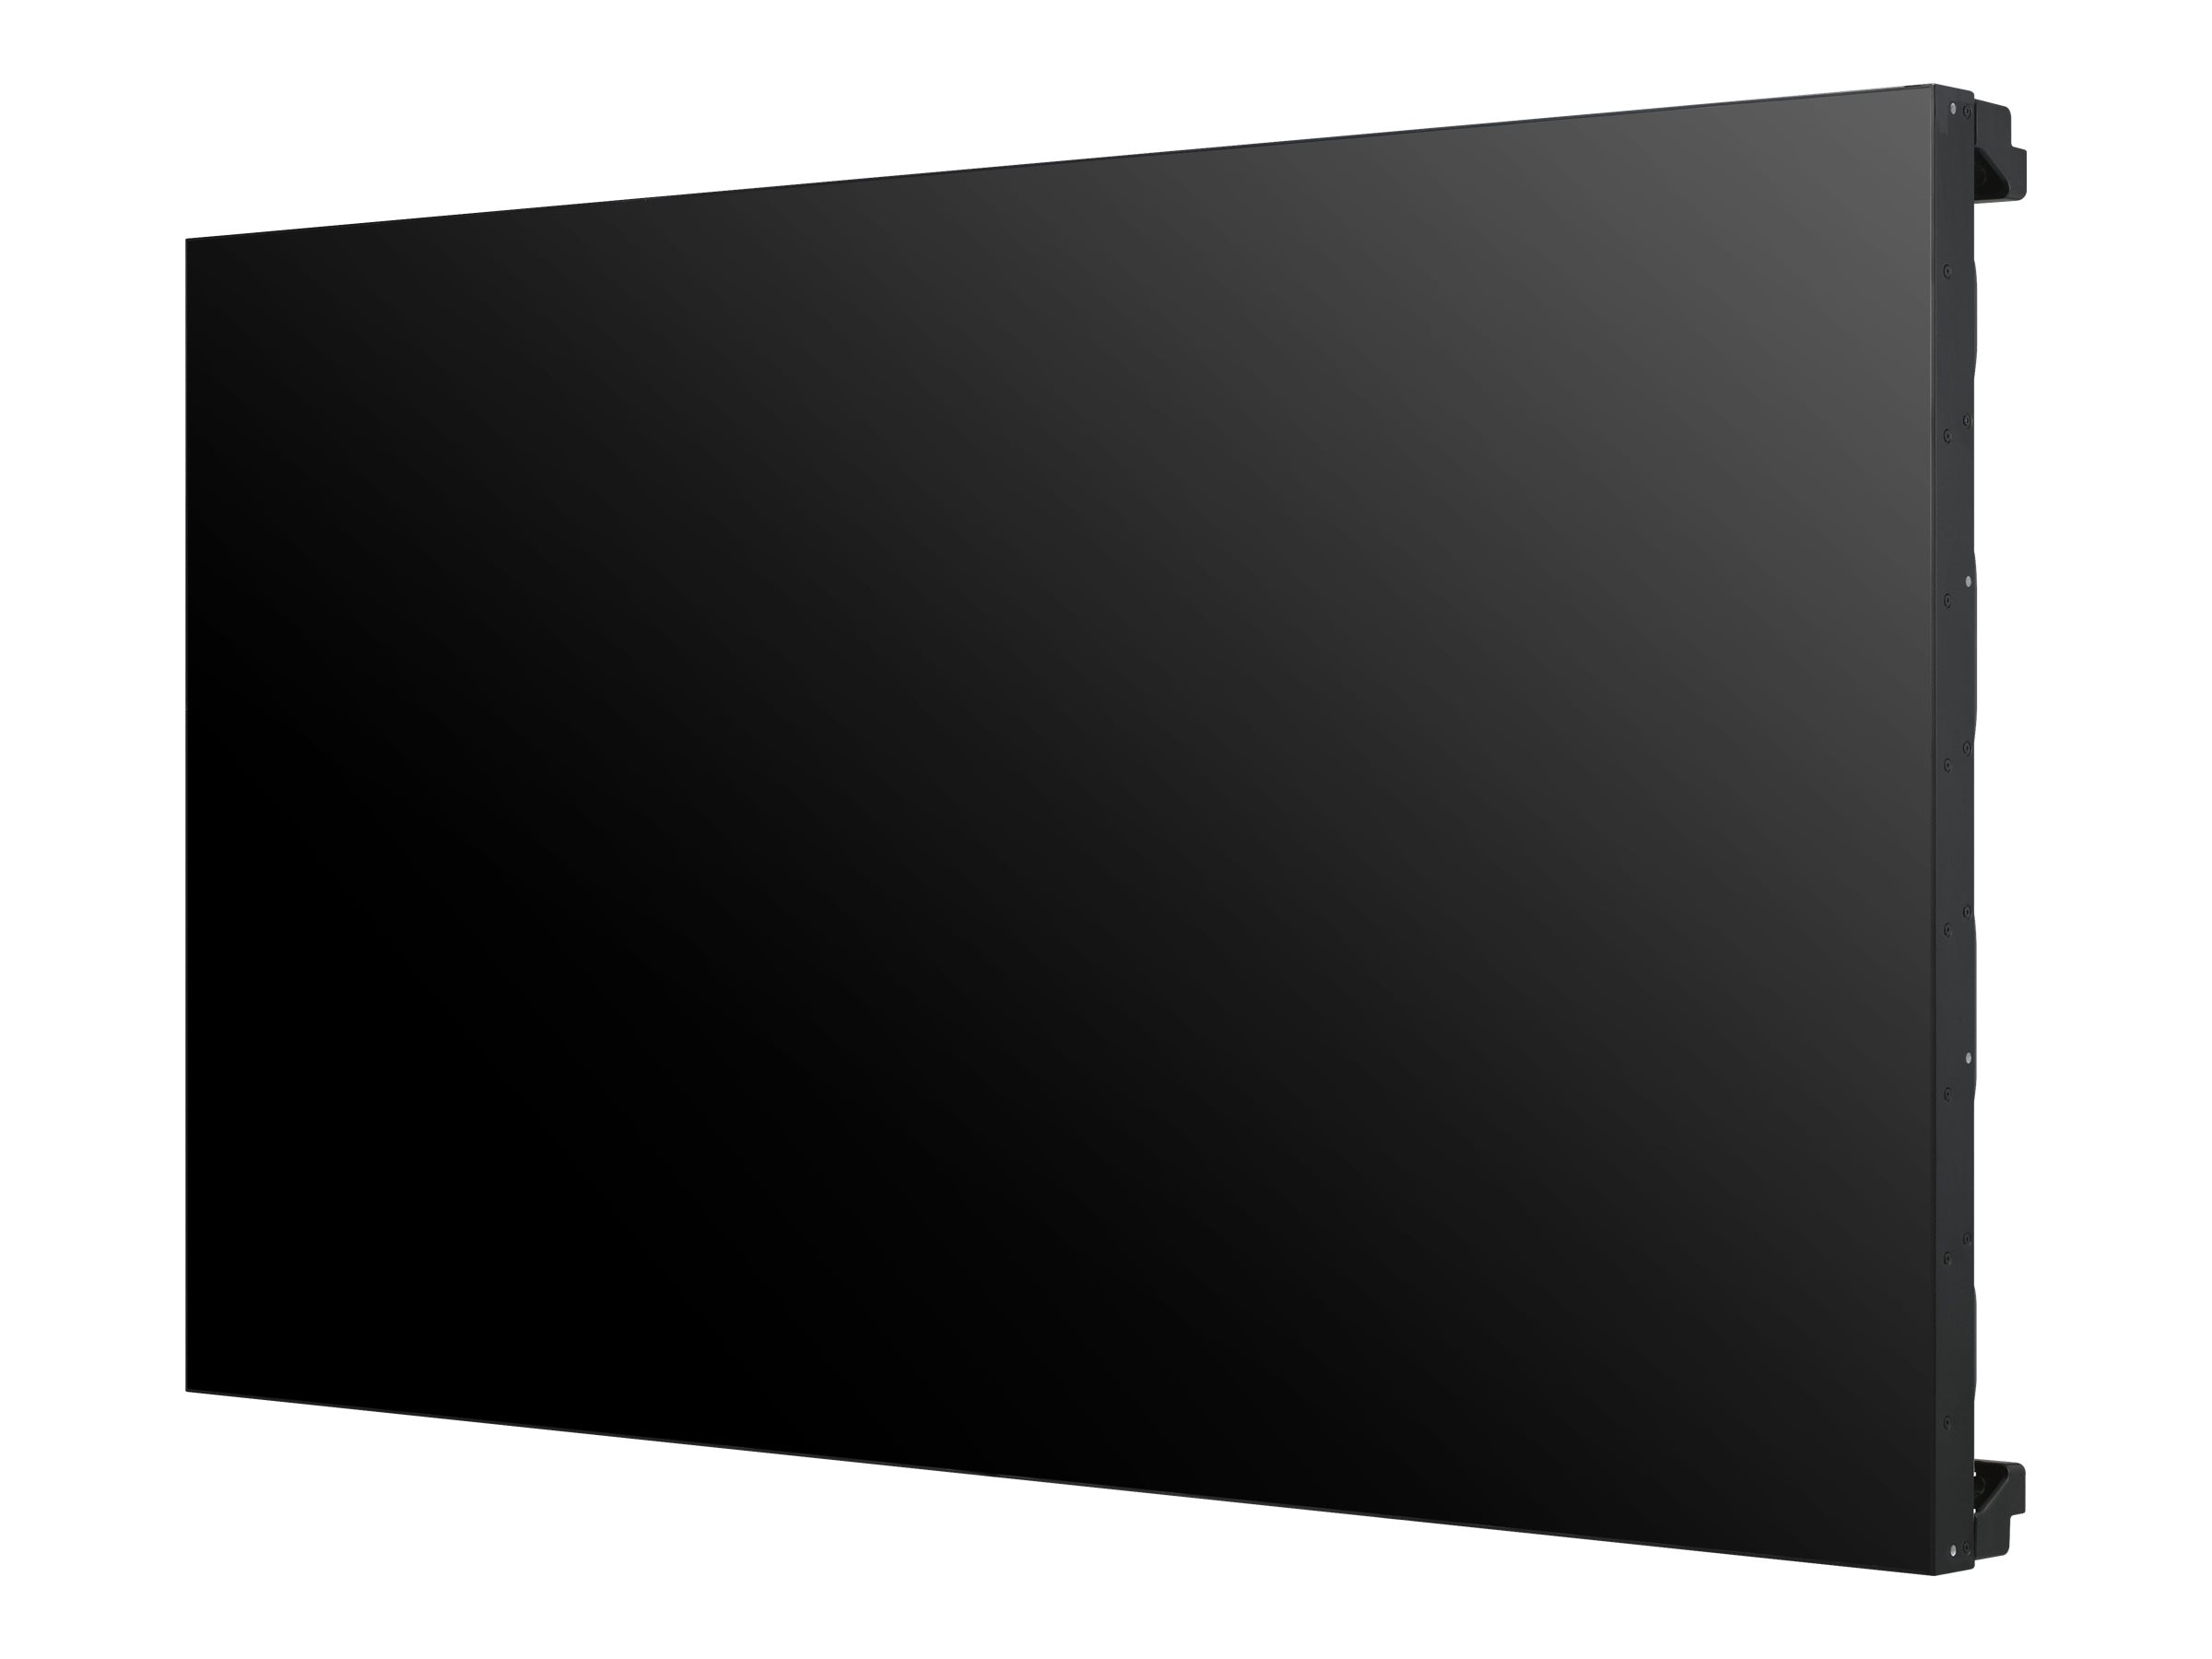 LG 55 55LV77A-7B LED Monitor - Black (Retail), 55LV77A-7B